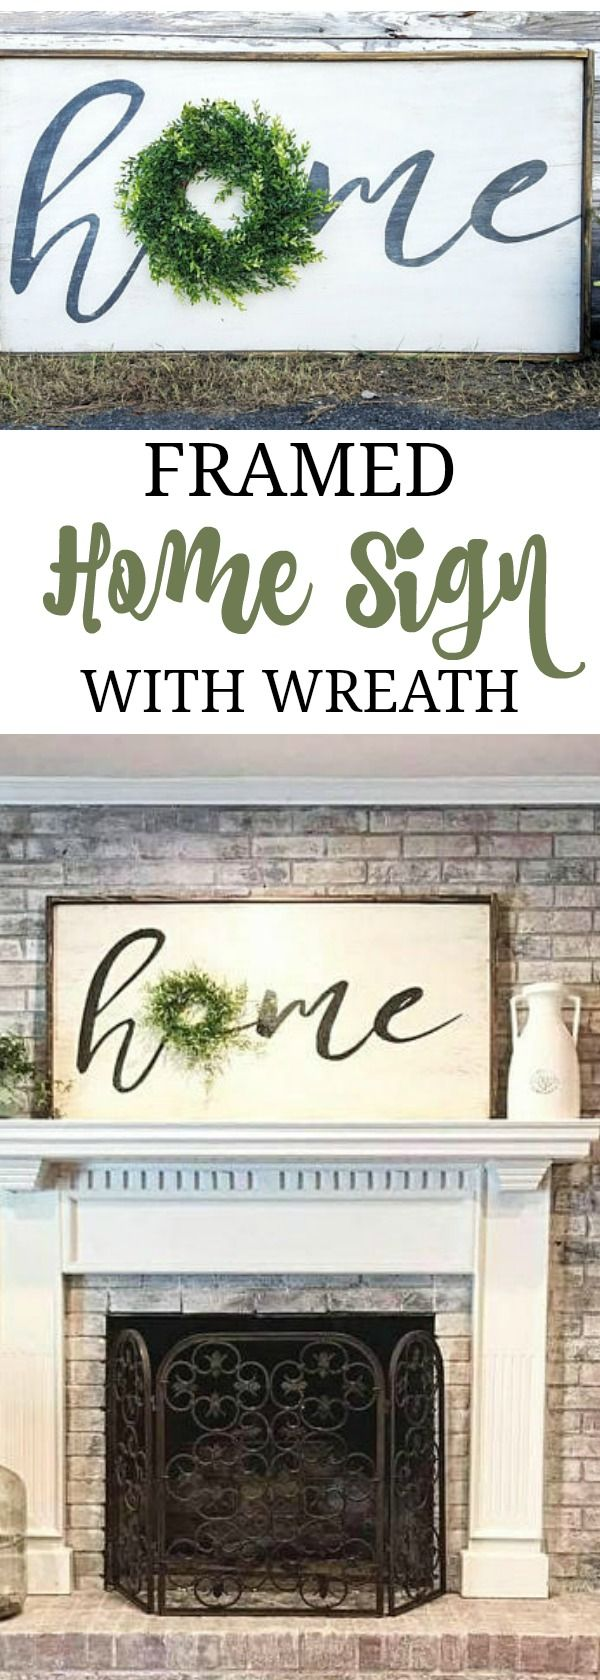 Another beautiful home sign from etsy! Elegant, yet rustic. Extra large Home sign with wreath, Large Home sign, Farmhouse Decor, Rustic Decor, Neutral Black/White Wooden Sign with wreath accent #oybpinners #ad